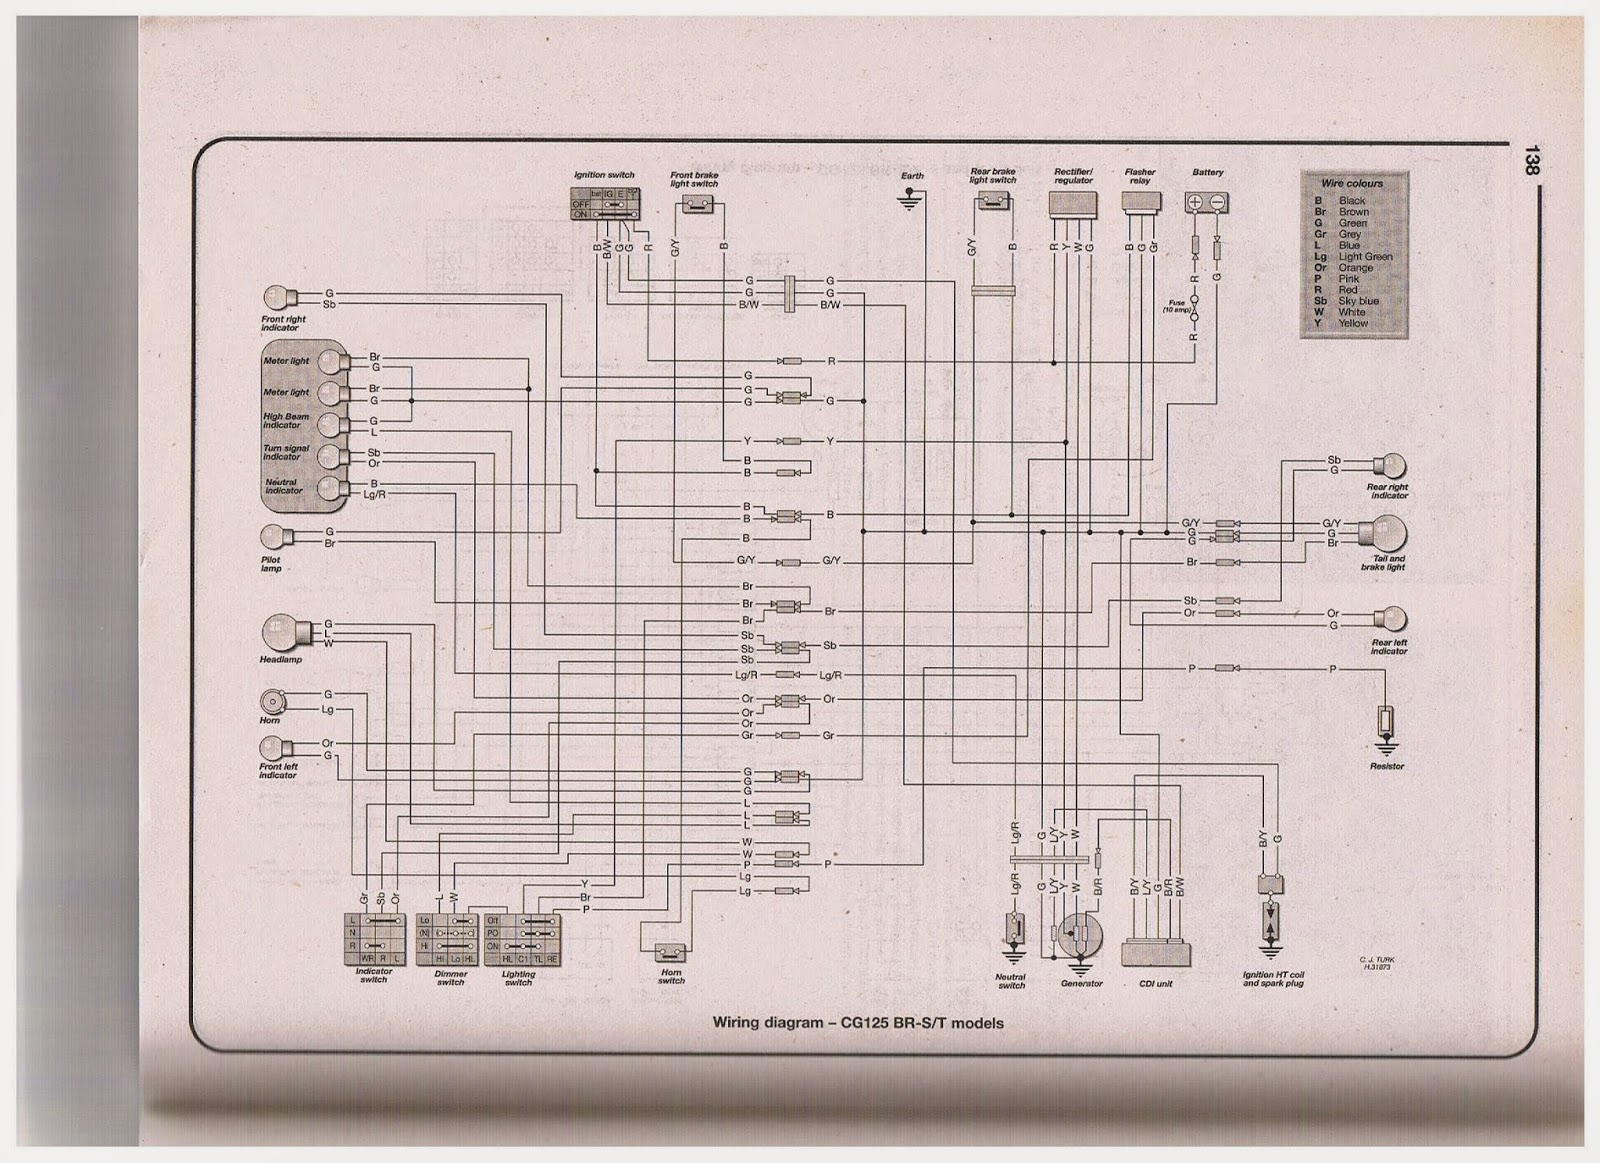 Yamaha Mio Soul I 125 Wiring Diagram 1991 Nissan 240sx Ignition Titan Motorcycle Library